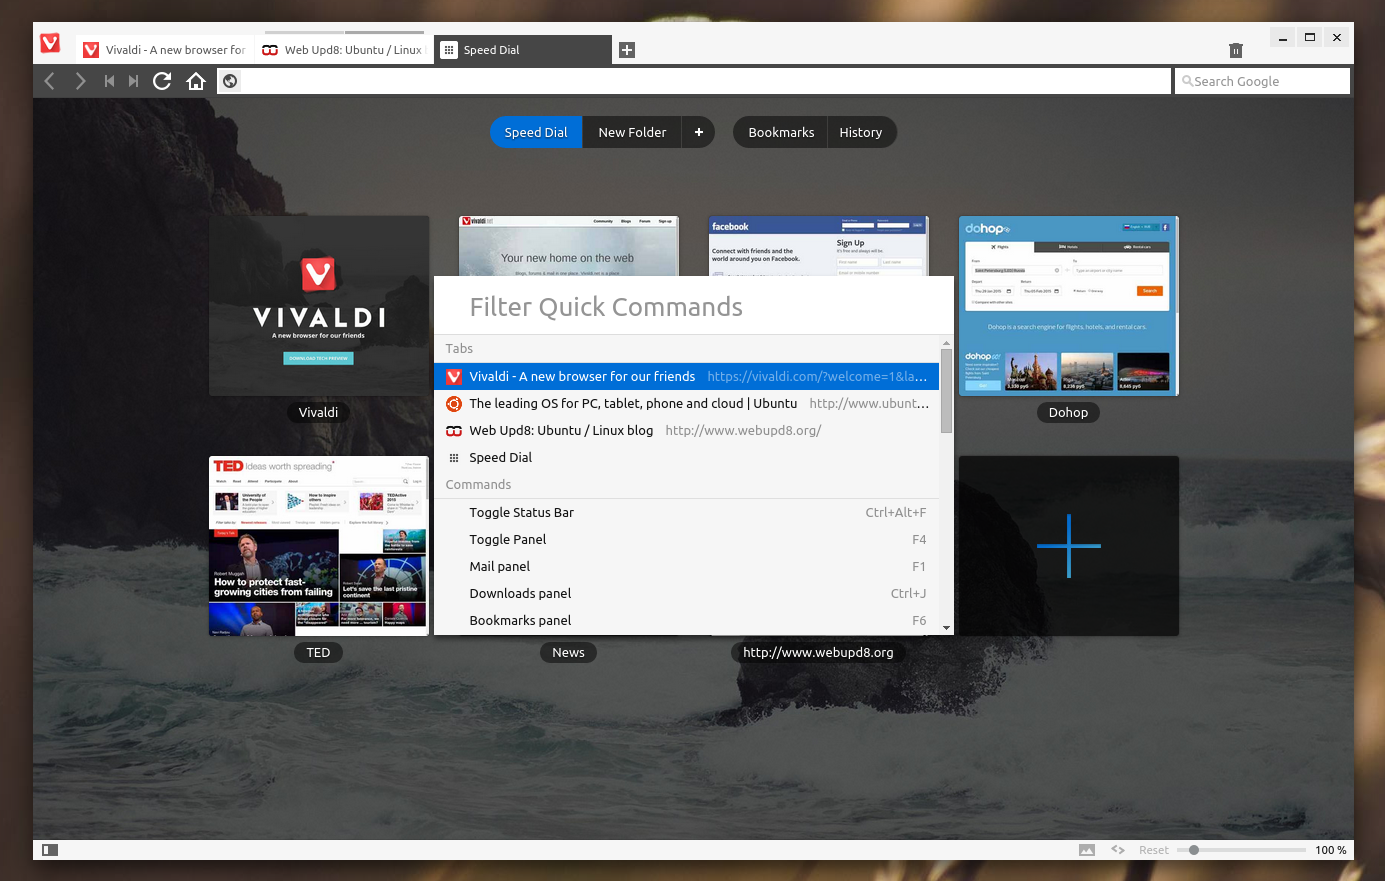 Vivaldi Browser for Ubuntu 14.04